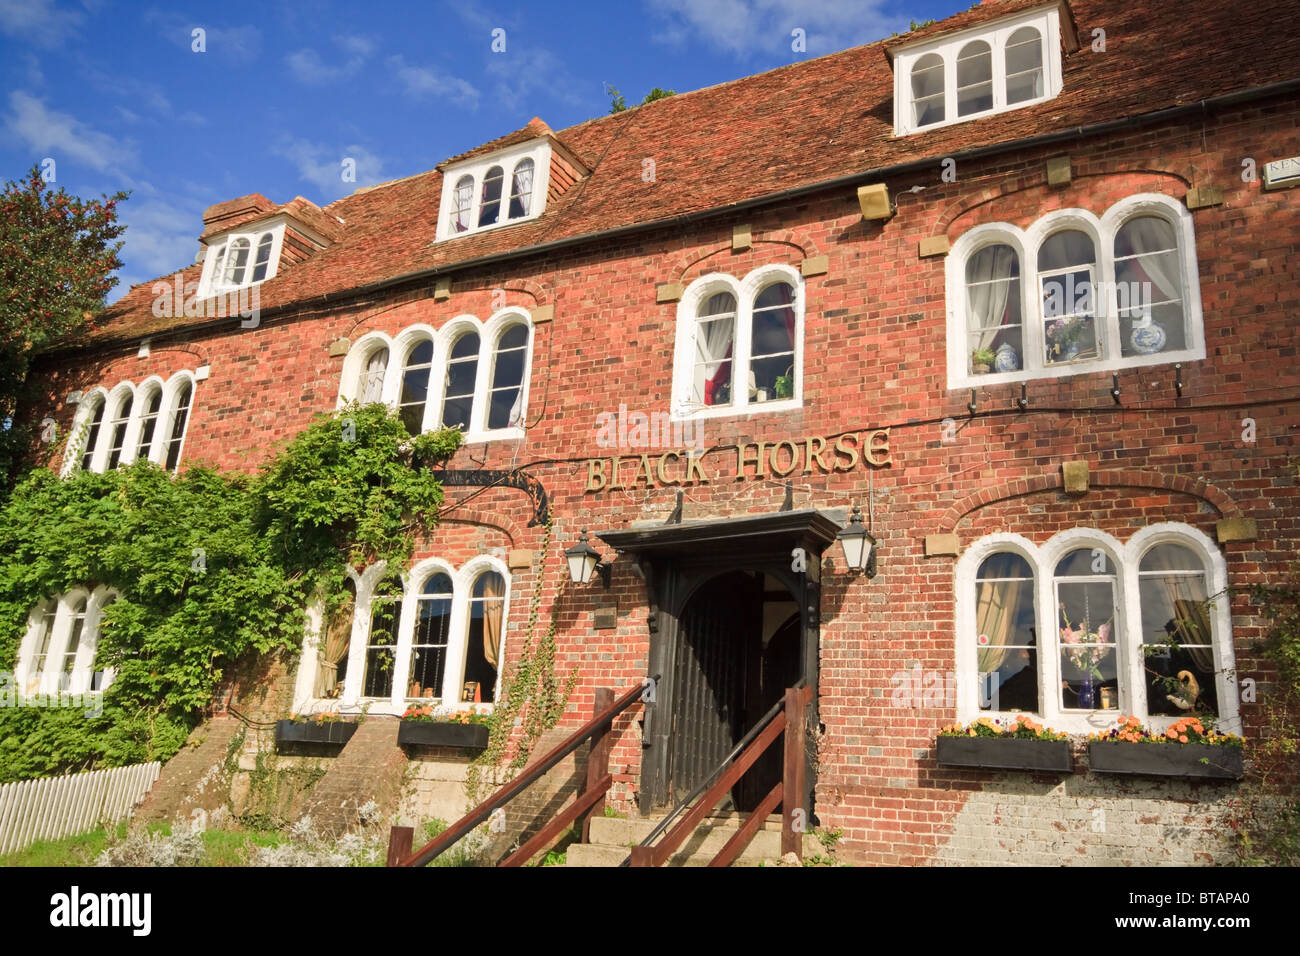 The Black Horse Pub in Pluckley, reputed to be haunted - Stock Image